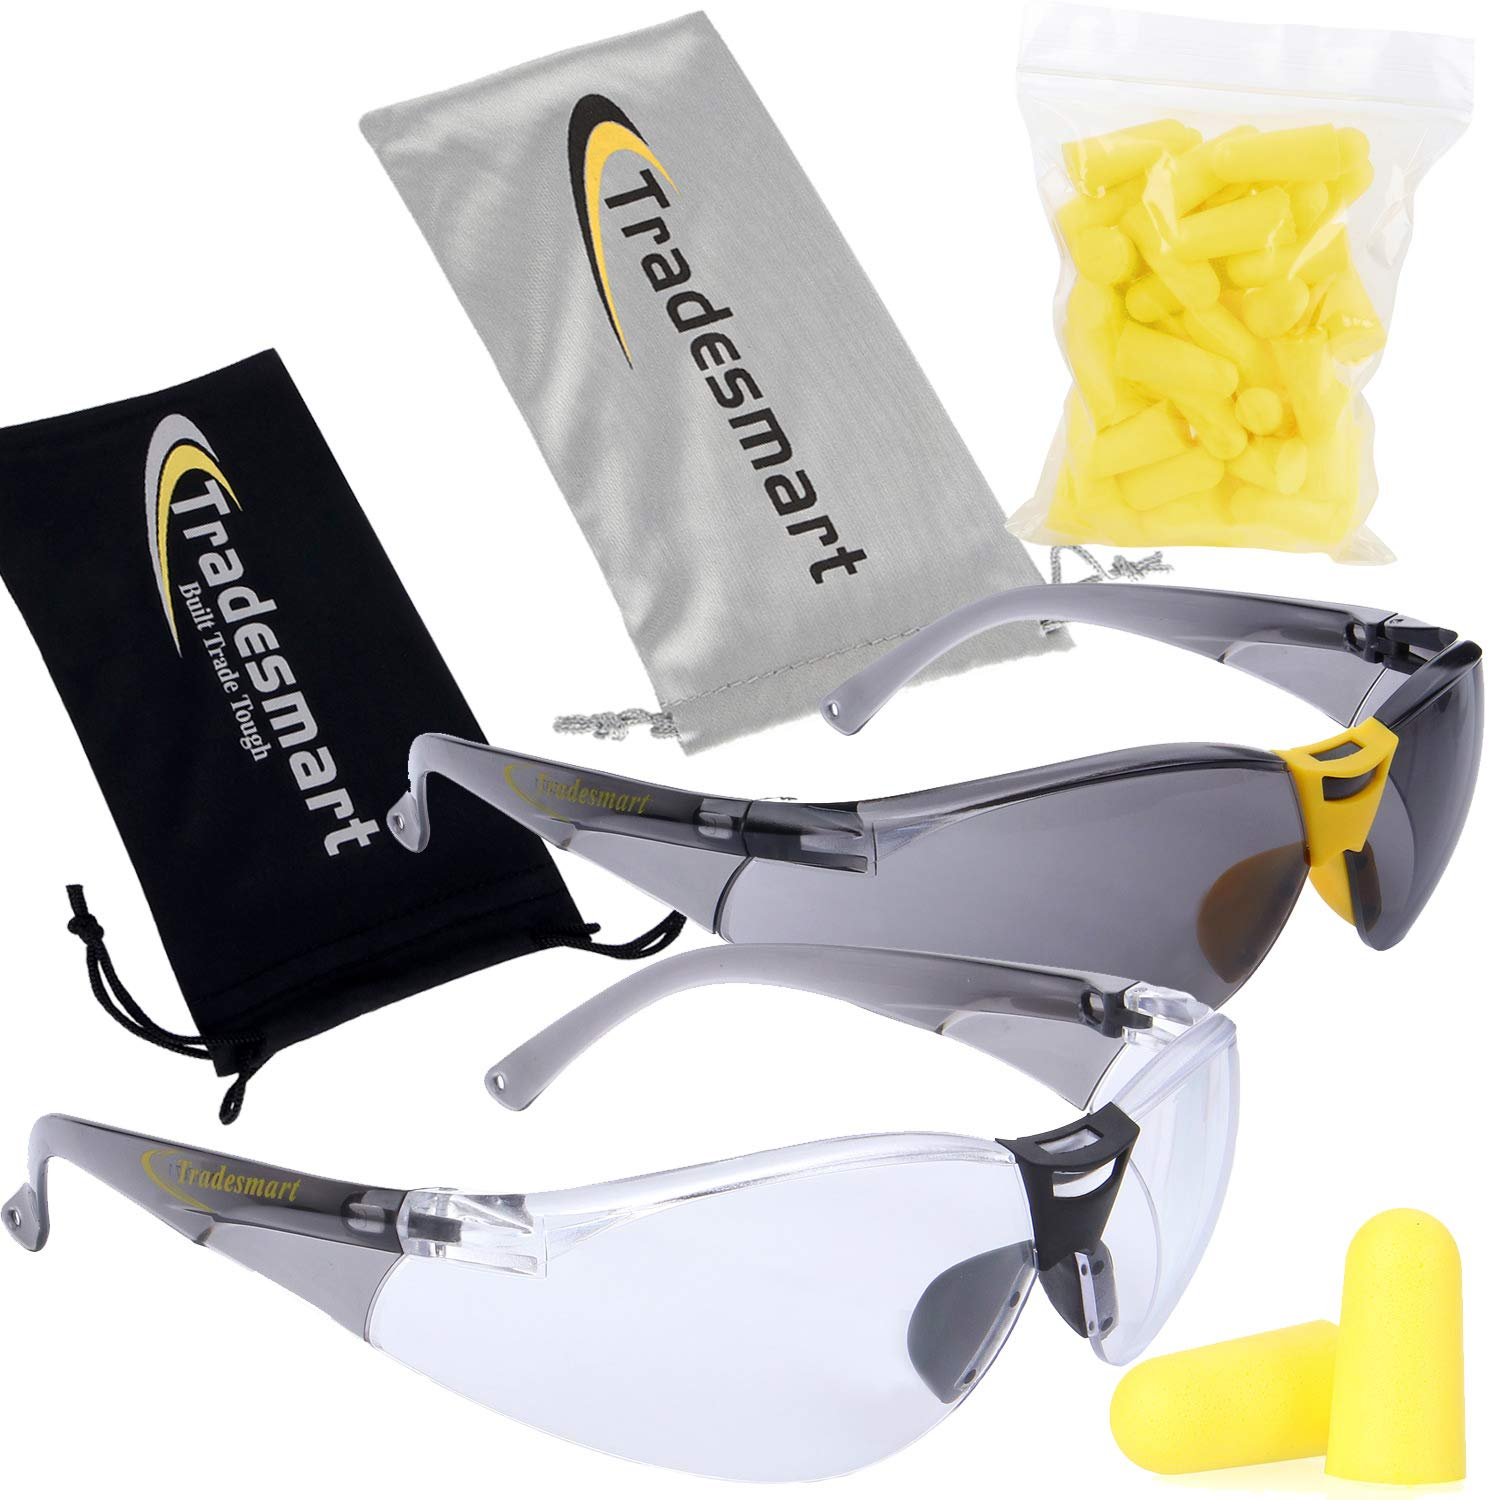 TRADESMART 2X Anti Fog Safety Glasses with 25PK NRR33 Earplugs - Clear & Tinted Protective Eyewear - UV400, Scratch Resistant & Antifog by TRADESMART BUILT TRADE TOUGH